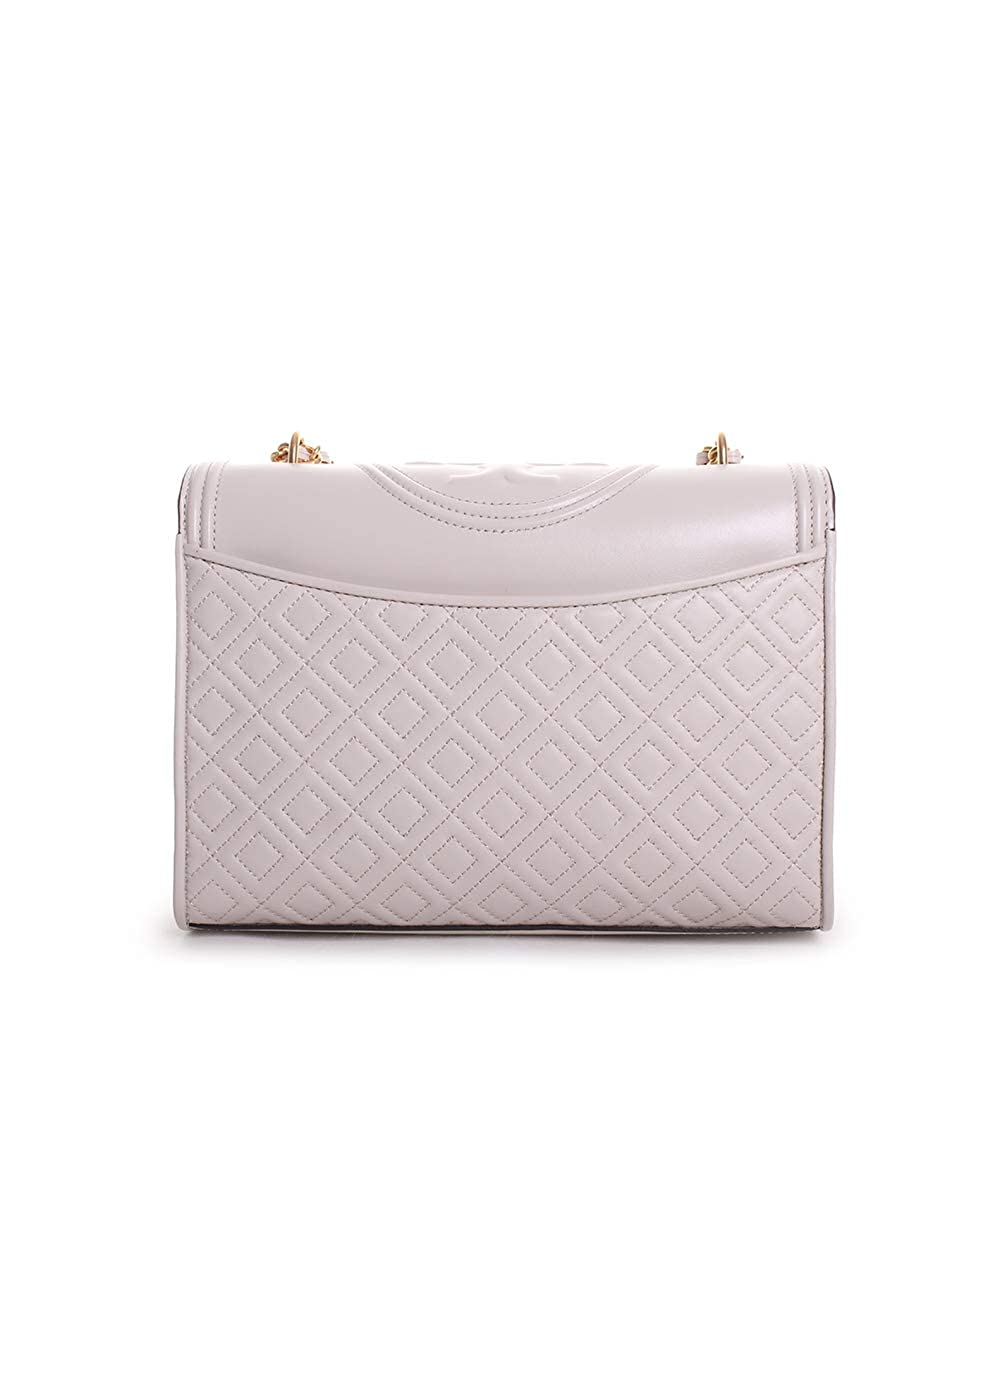 d81778f561a Amazon.com  Tory Burch Fleming Convertible Leather Shoulder Bag (Birch)   Clothing